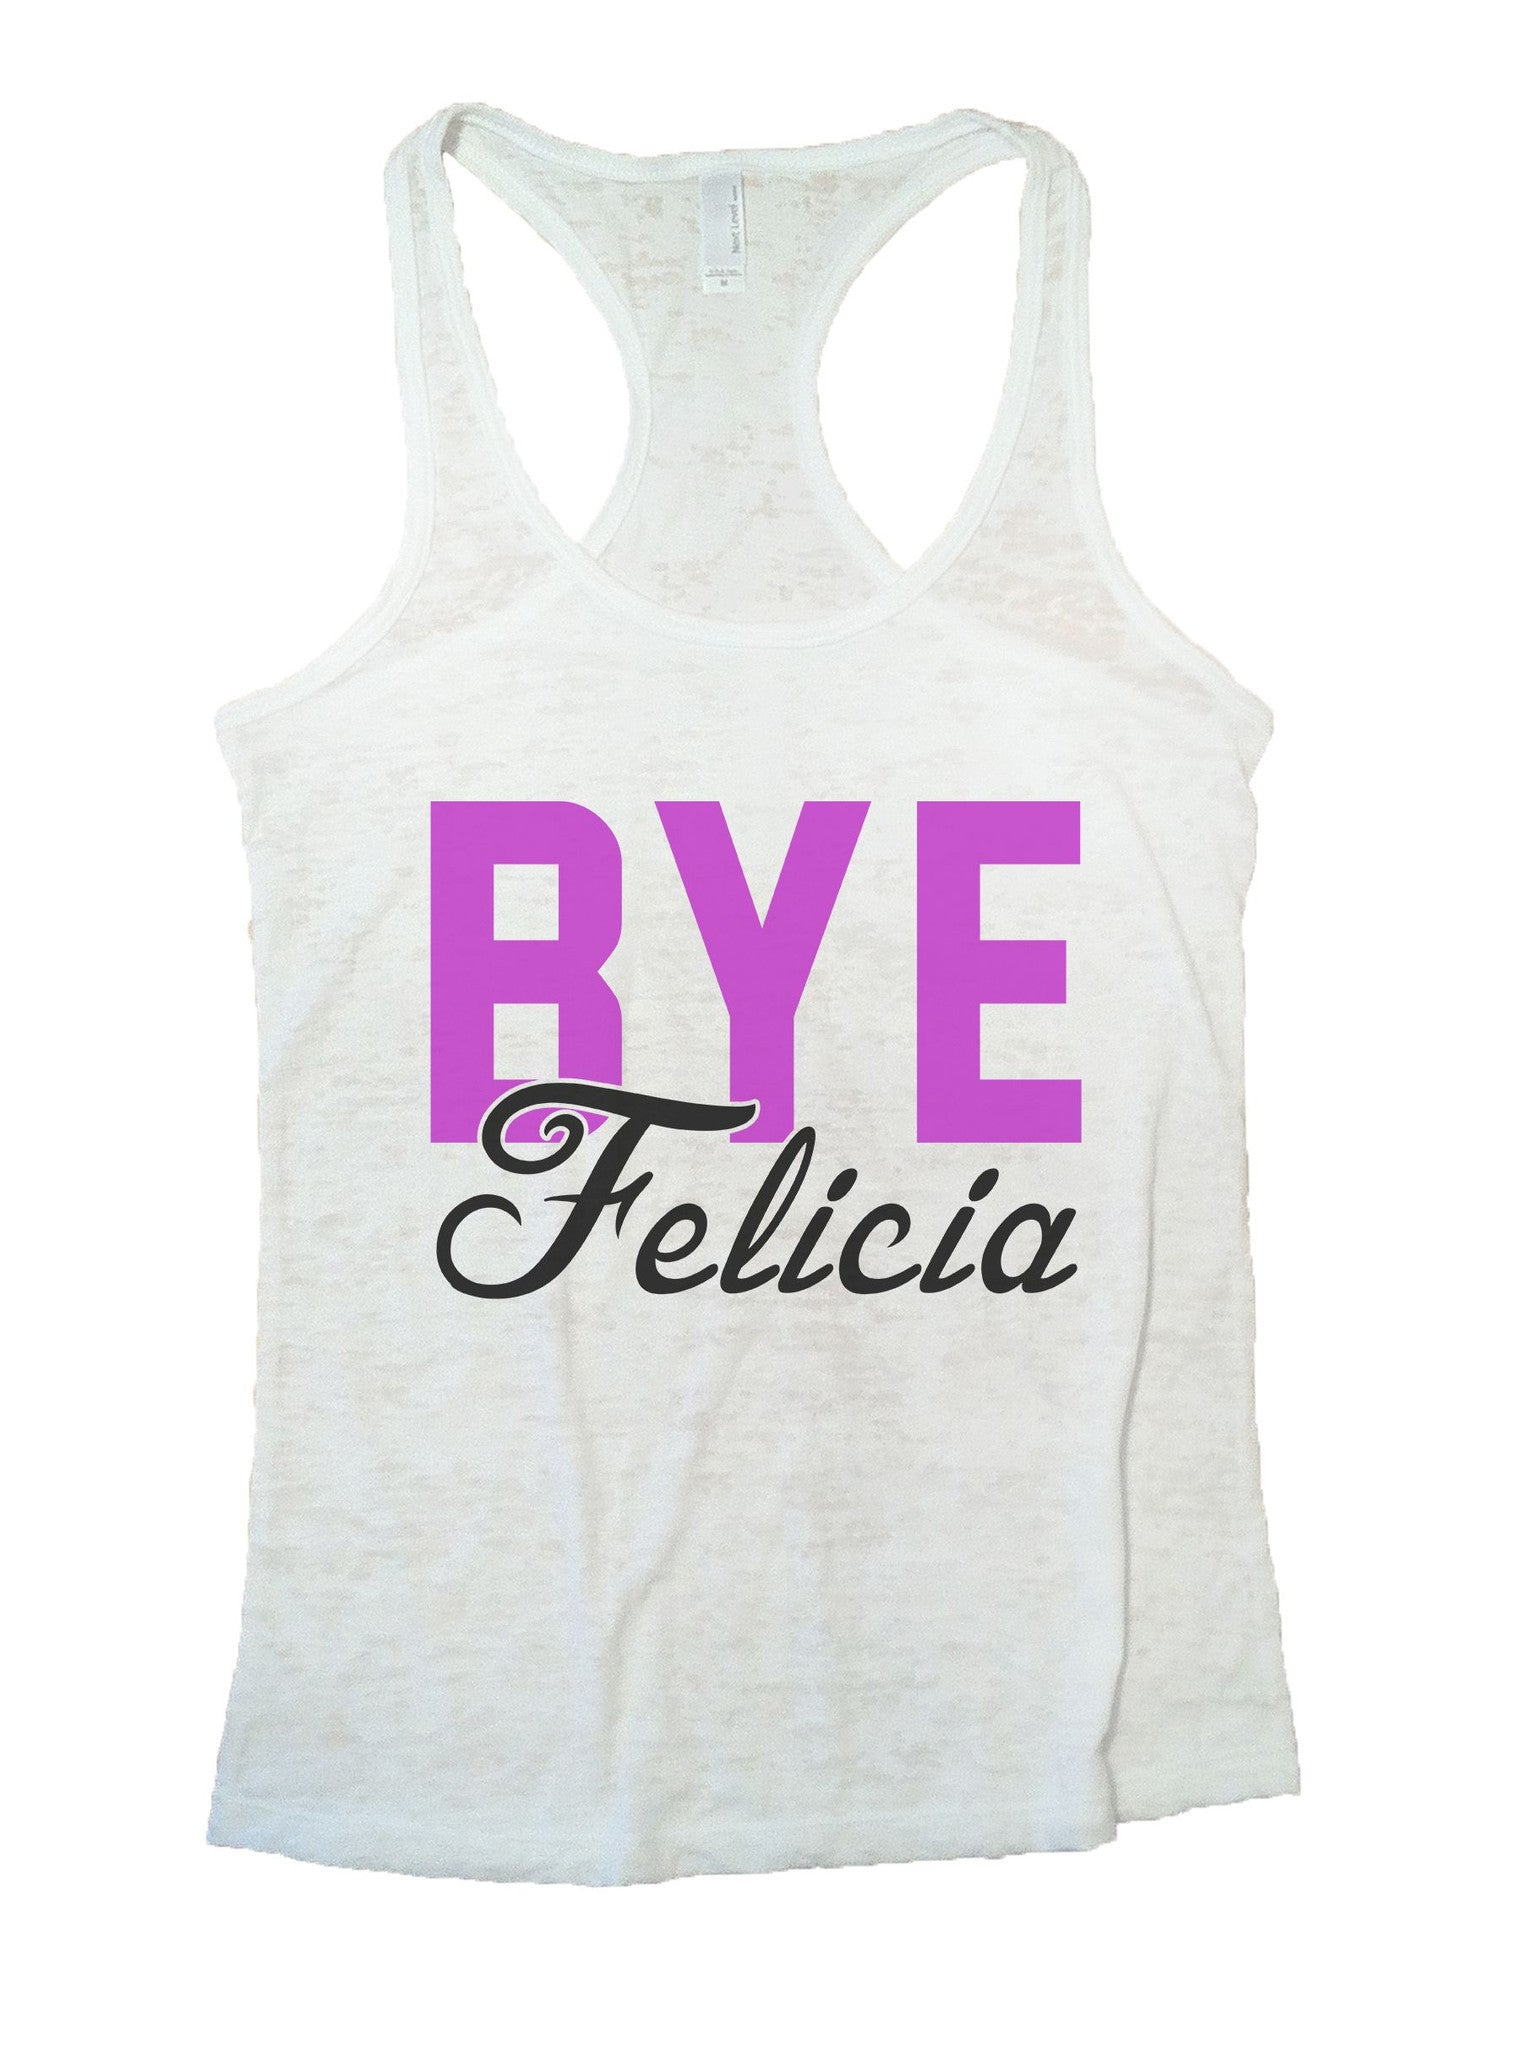 Bye Felicia Burnout Tank Top By BurnoutTankTops.com - 1092 - Funny Shirts Tank Tops Burnouts and Triblends  - 6